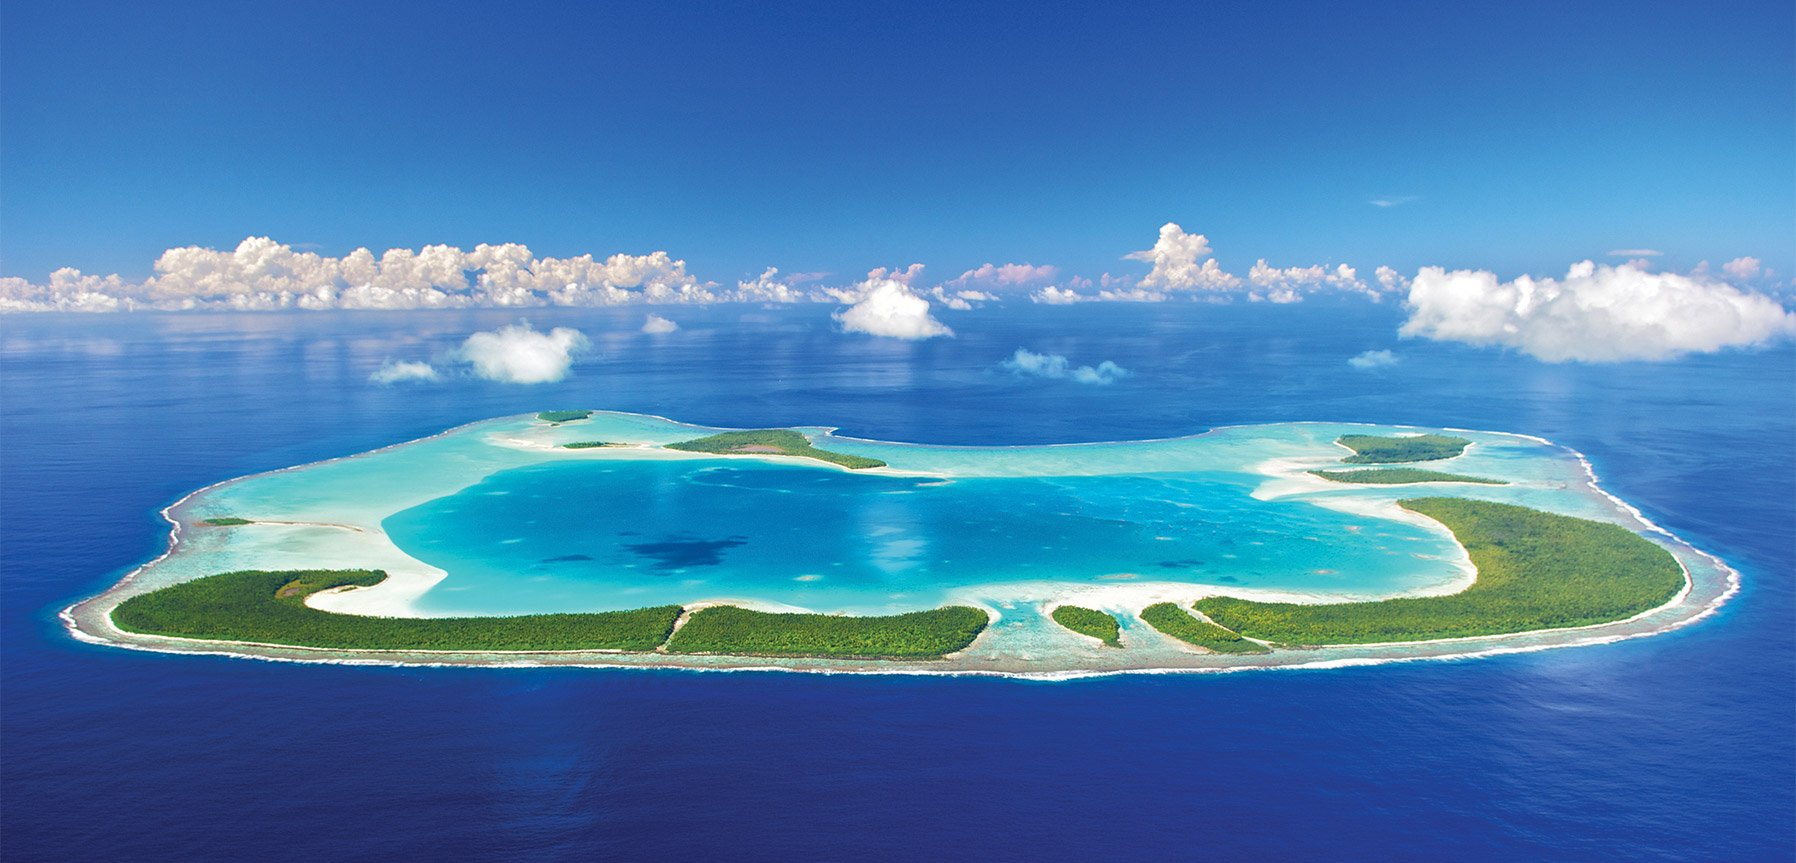 A drone view of The Brando island